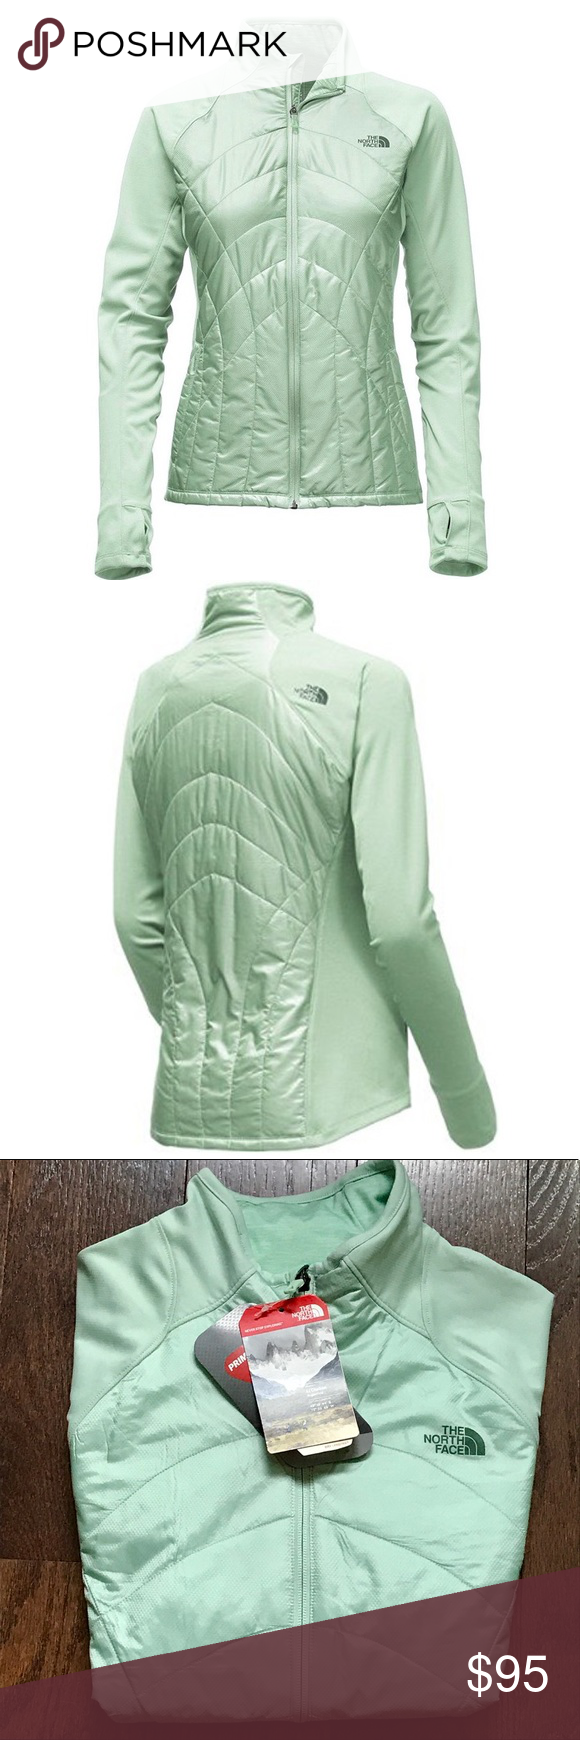 c0484e88b NWT - NORTH FACE ANIMAGI Jacket Authentic THE NORTH FACE Women's ...